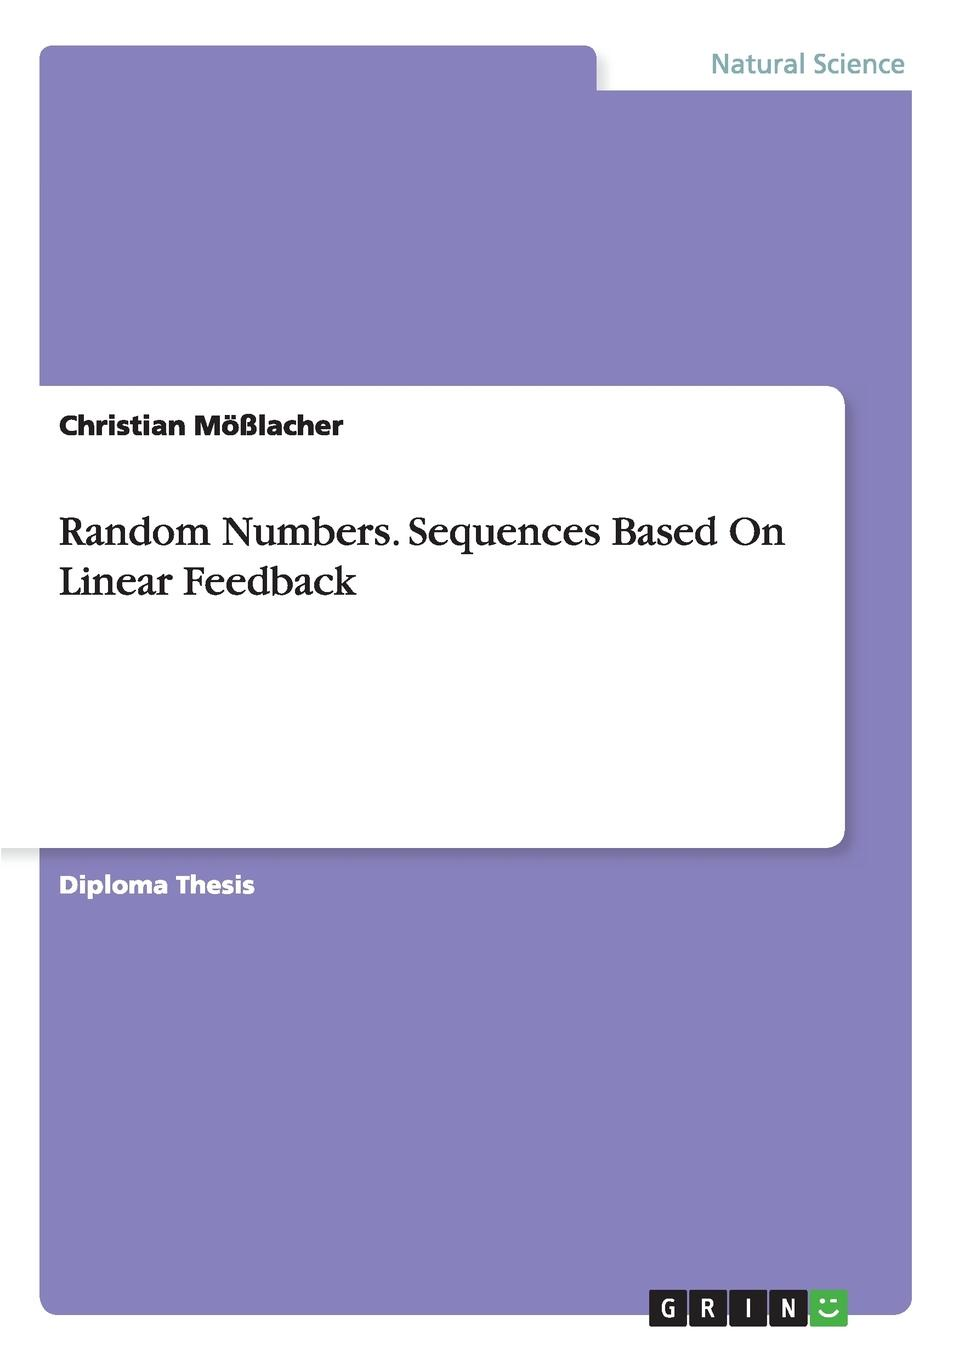 Christian Mößlacher Random Numbers. Sequences Based On Linear Feedback куба виктория километры веры random side point